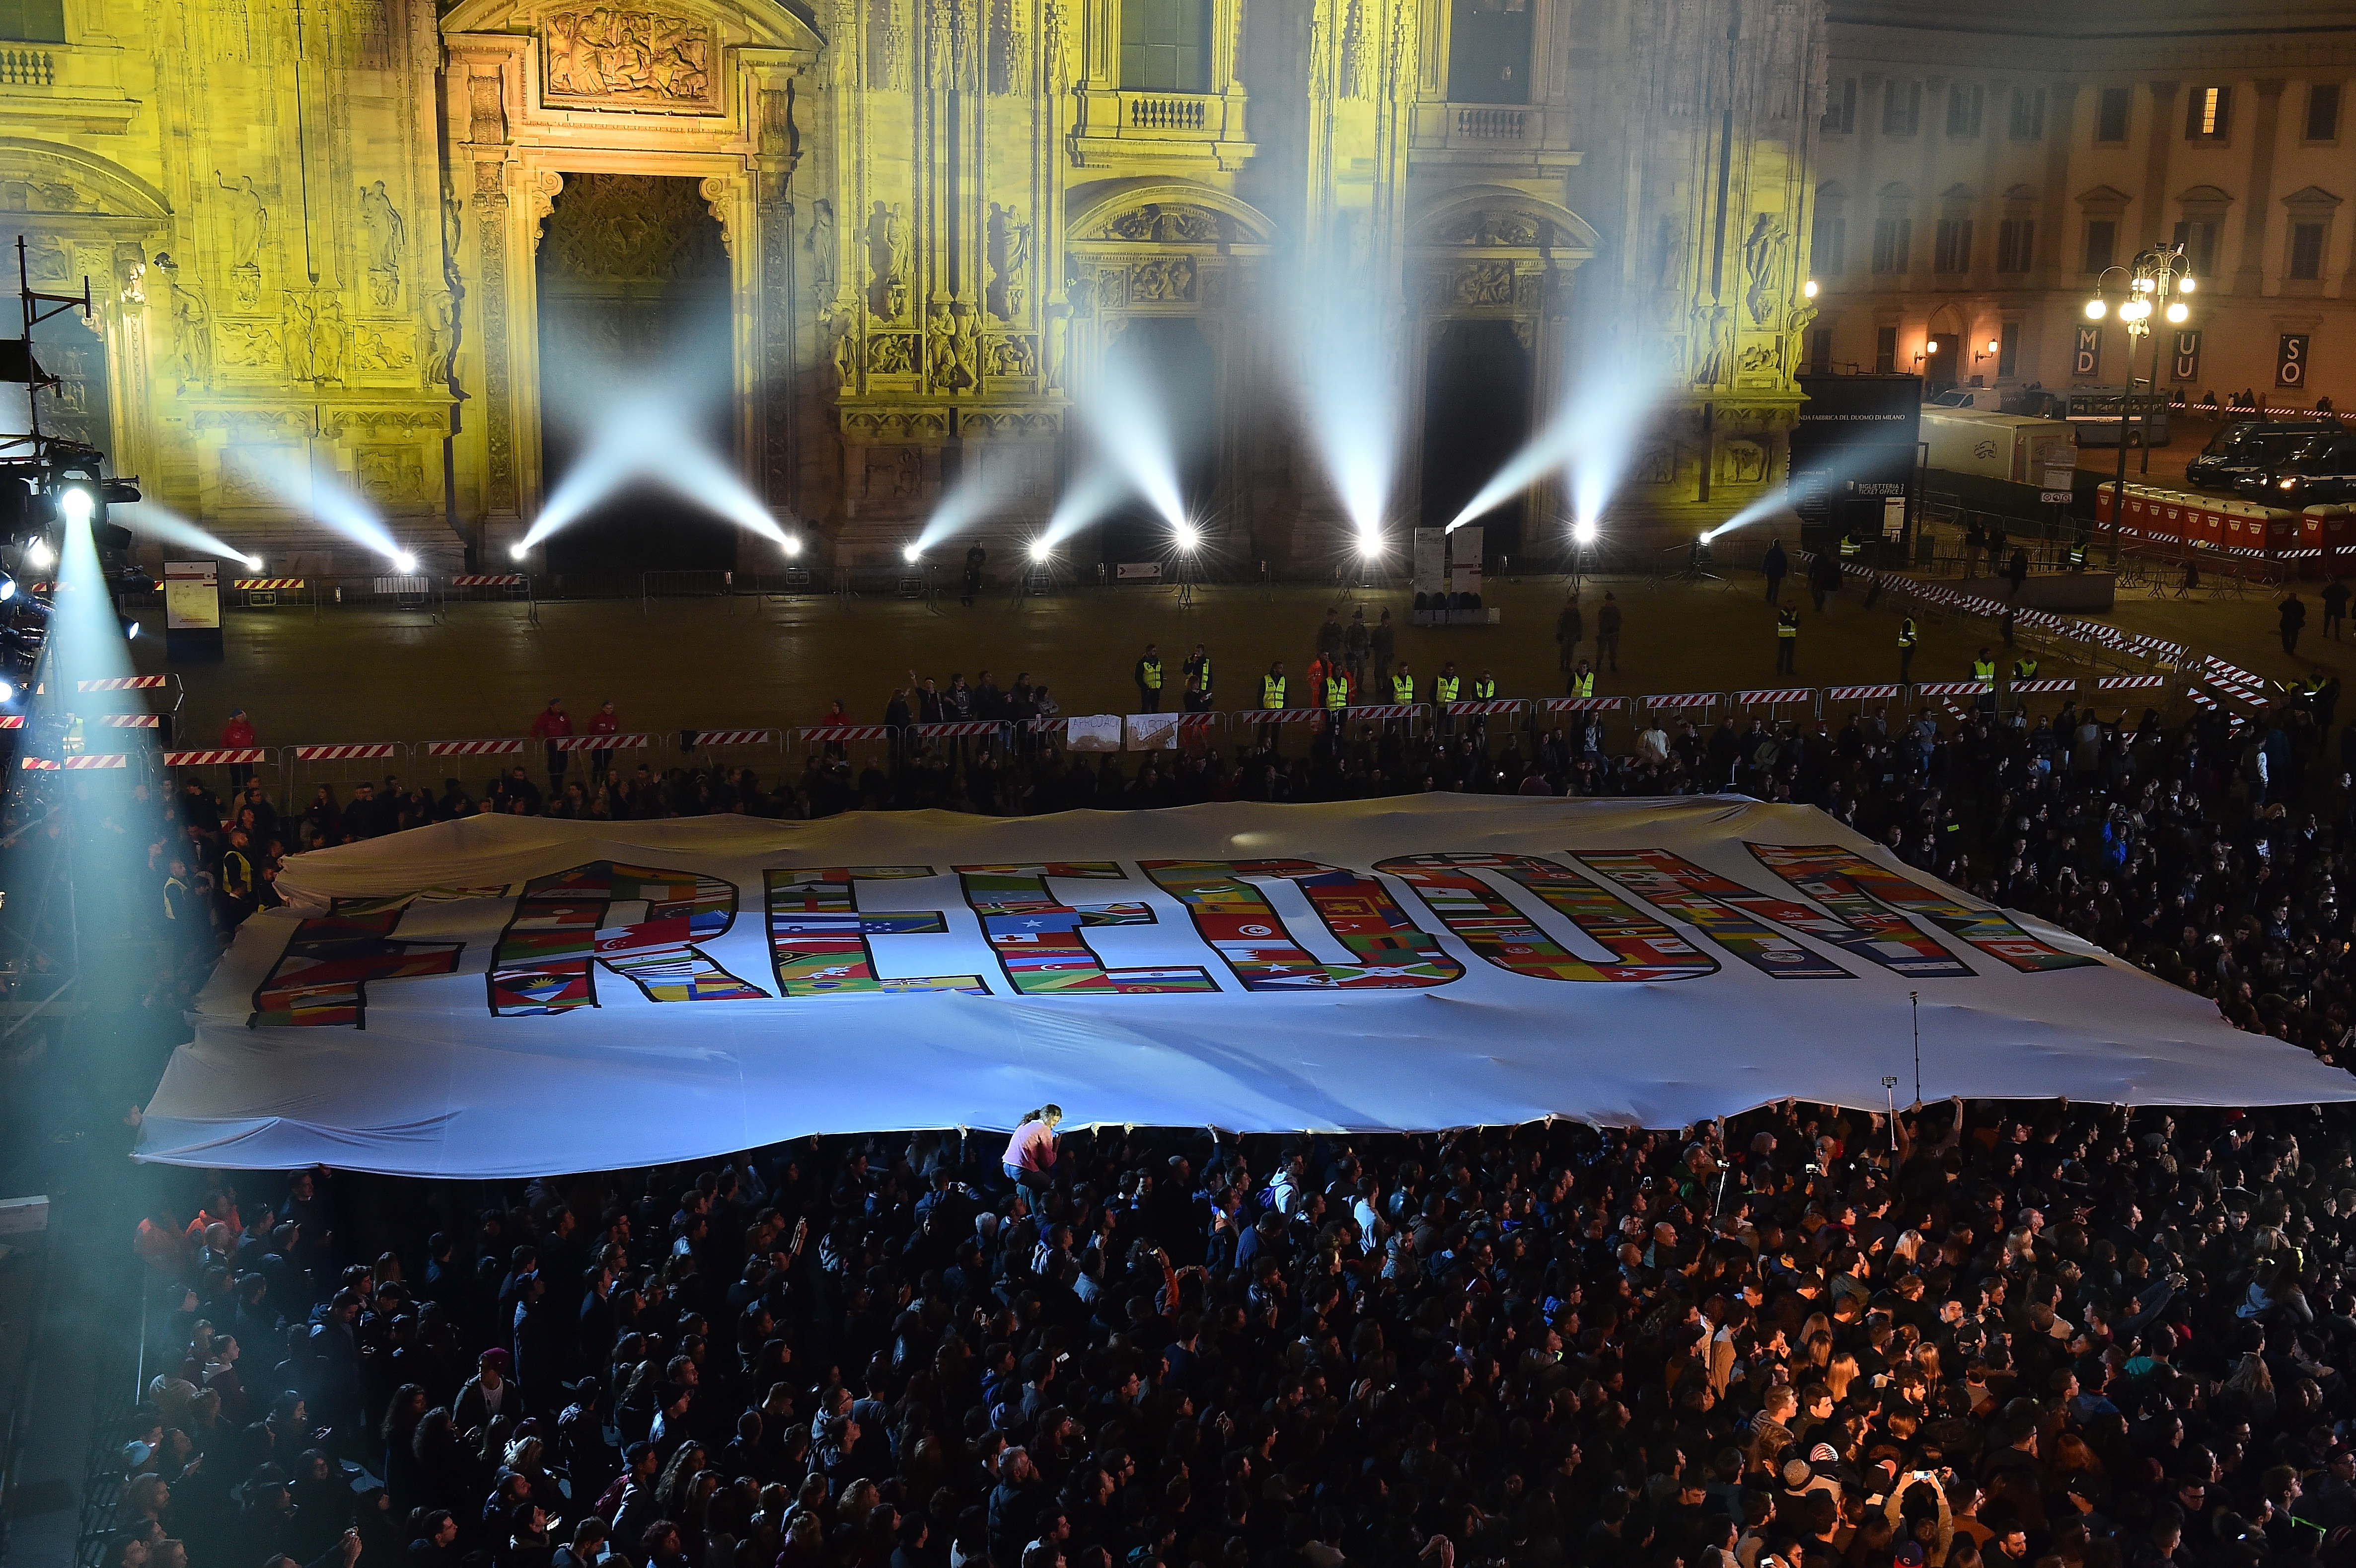 MILAN, ITALY - OCTOBER 25:  General view of freedom flag for Syria/refugee crisis at the outside broadcast during the MTV EMA's 2015 at Duomo on October 25, 2015 in Milan, Italy.  (Photo by Stefania D'Alessandro/MTV 2015/Getty Images for MTV)